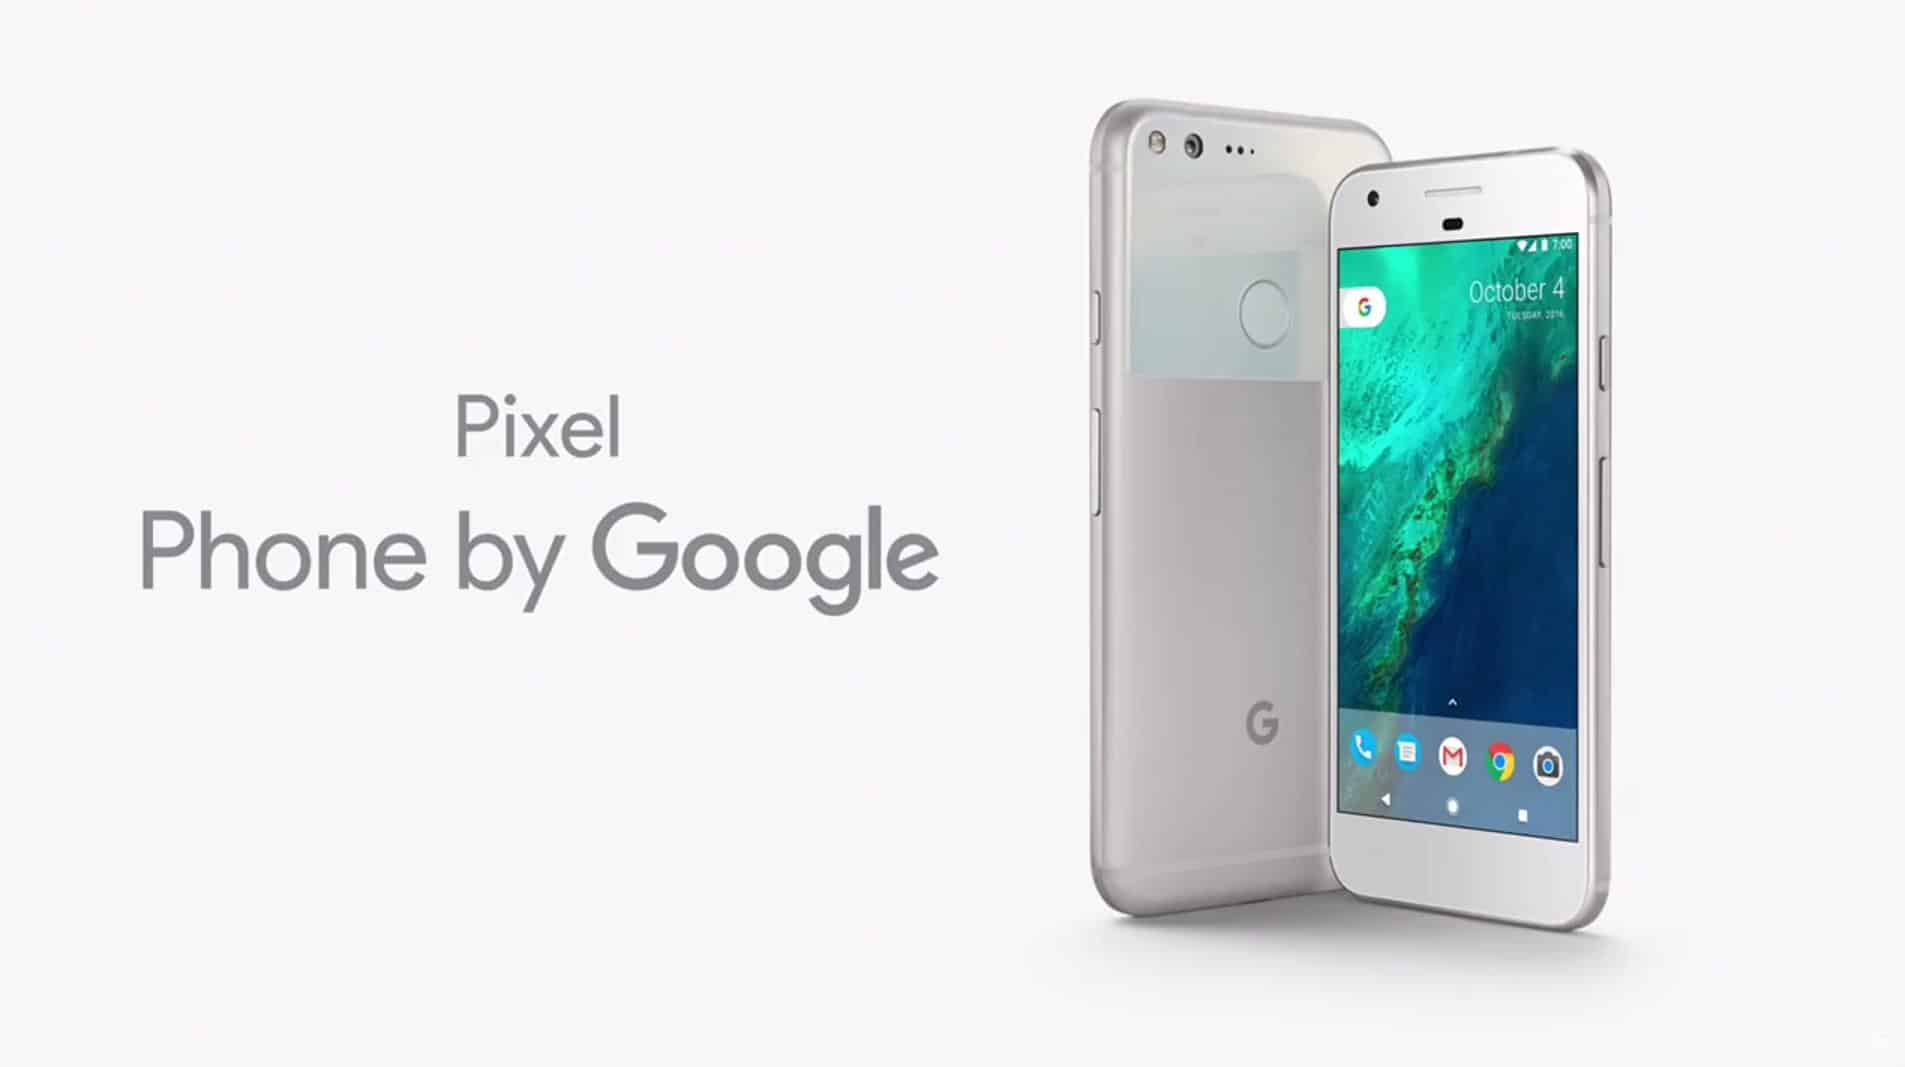 Pixel Phone by Google